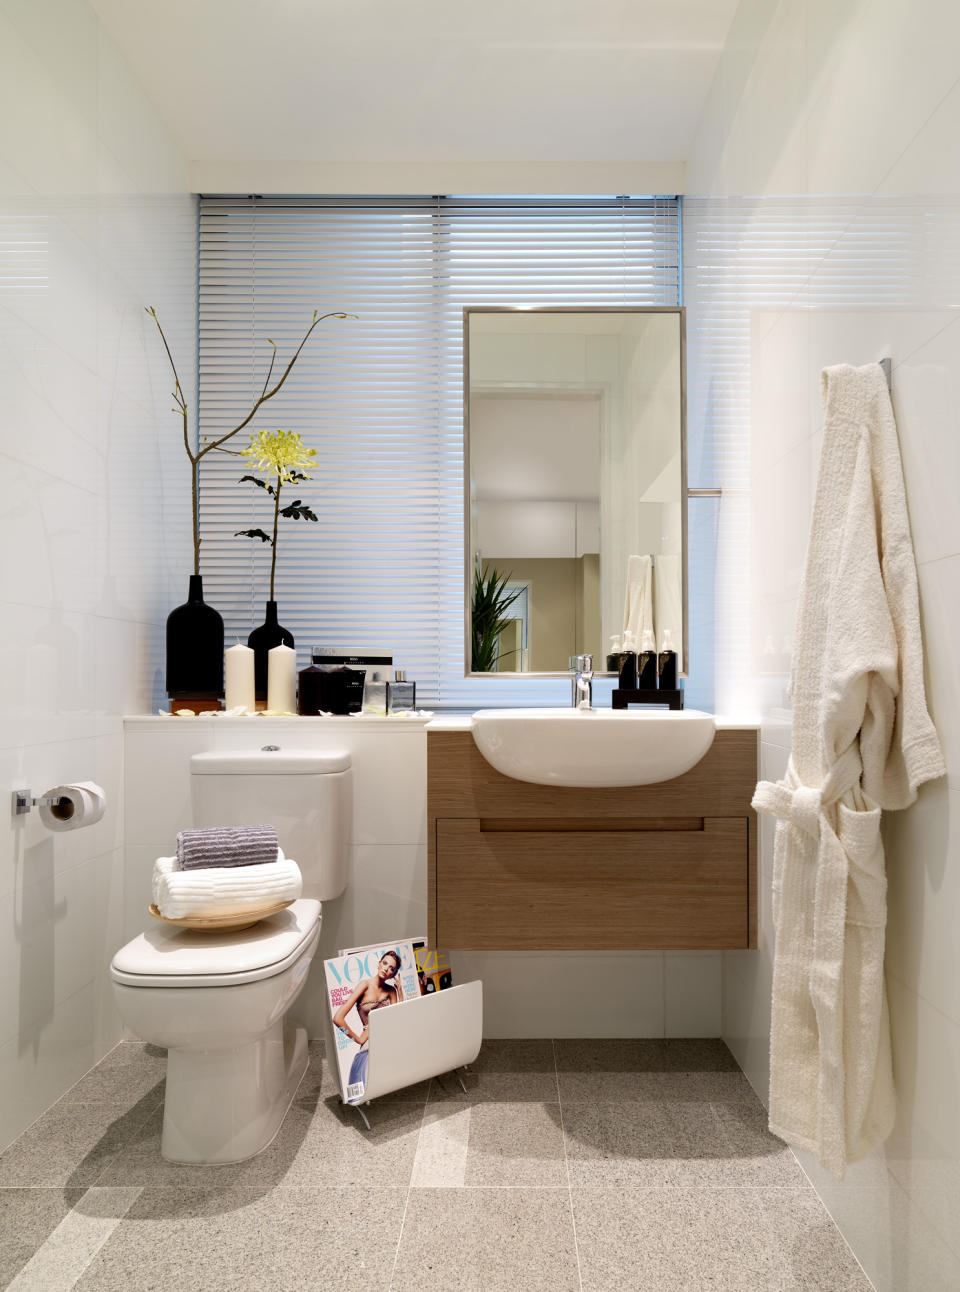 Stunning Small Bathroom Interior Design Ideas 960 x 1292 · 145 kB · jpeg